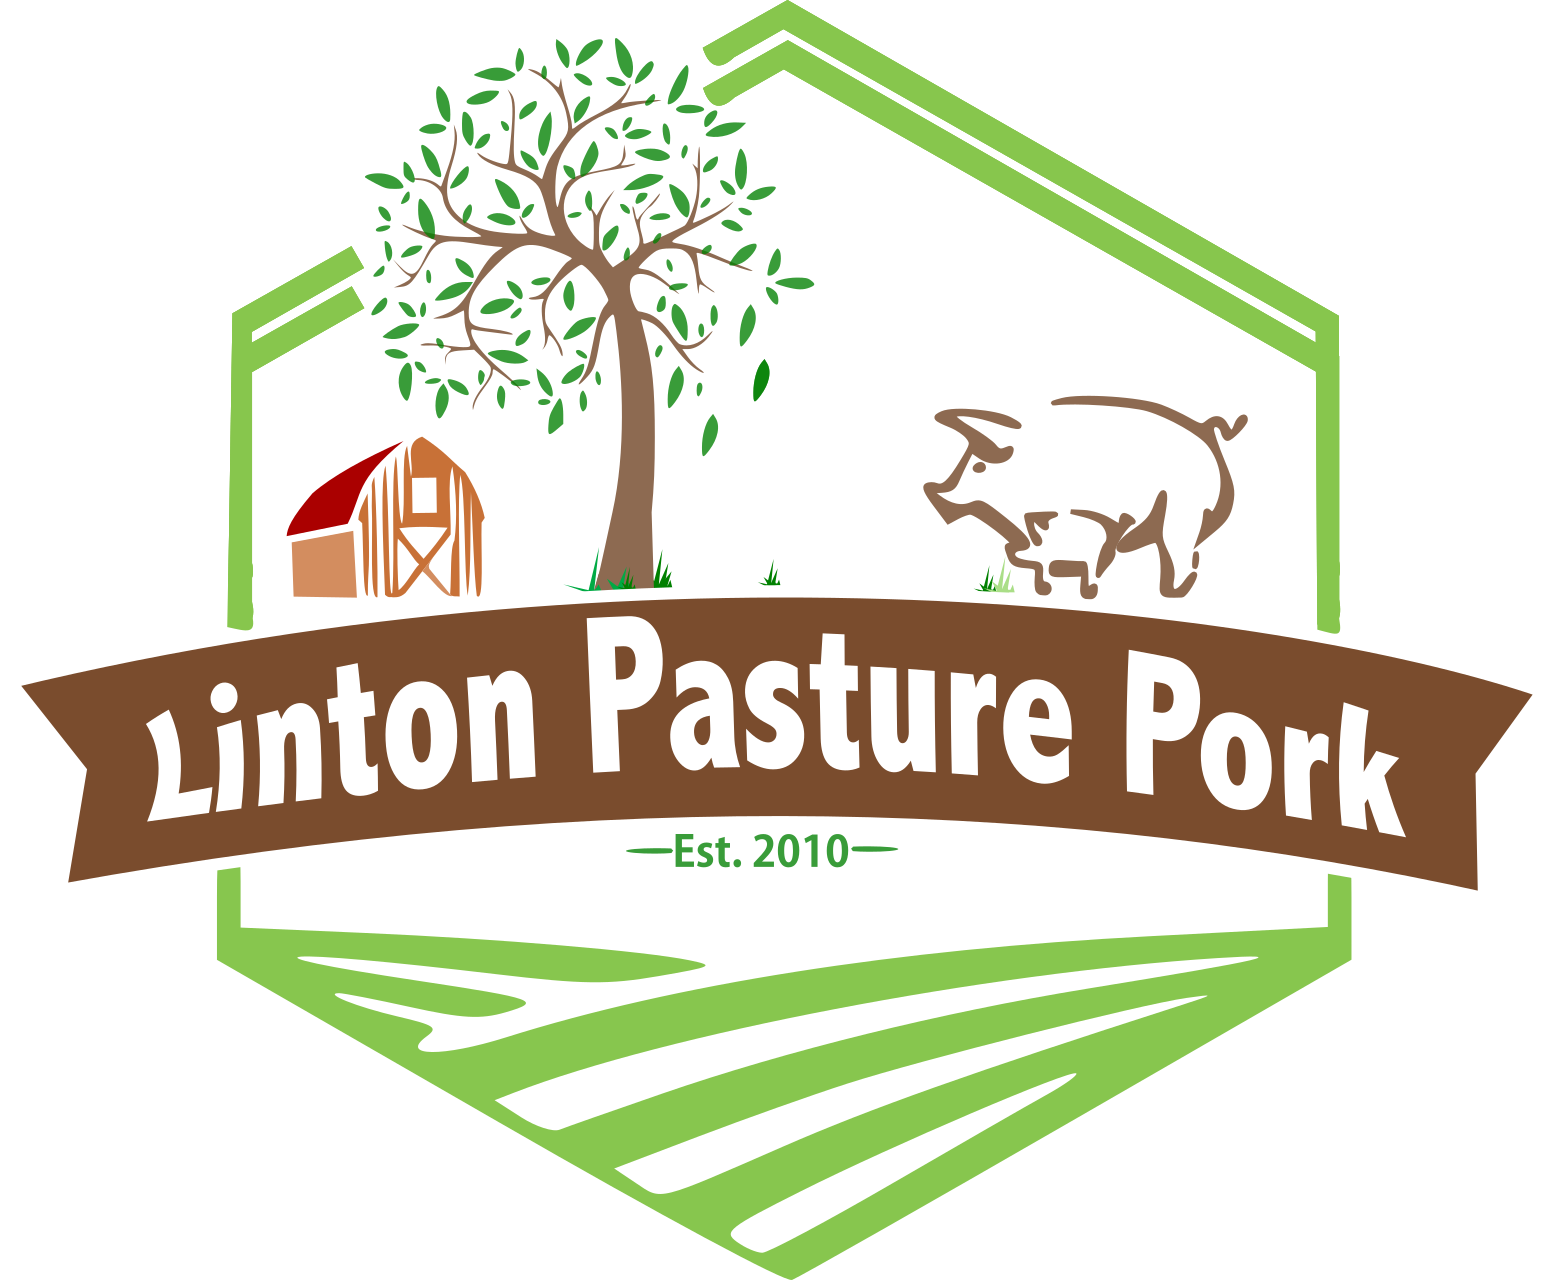 Linton Pasture Pork